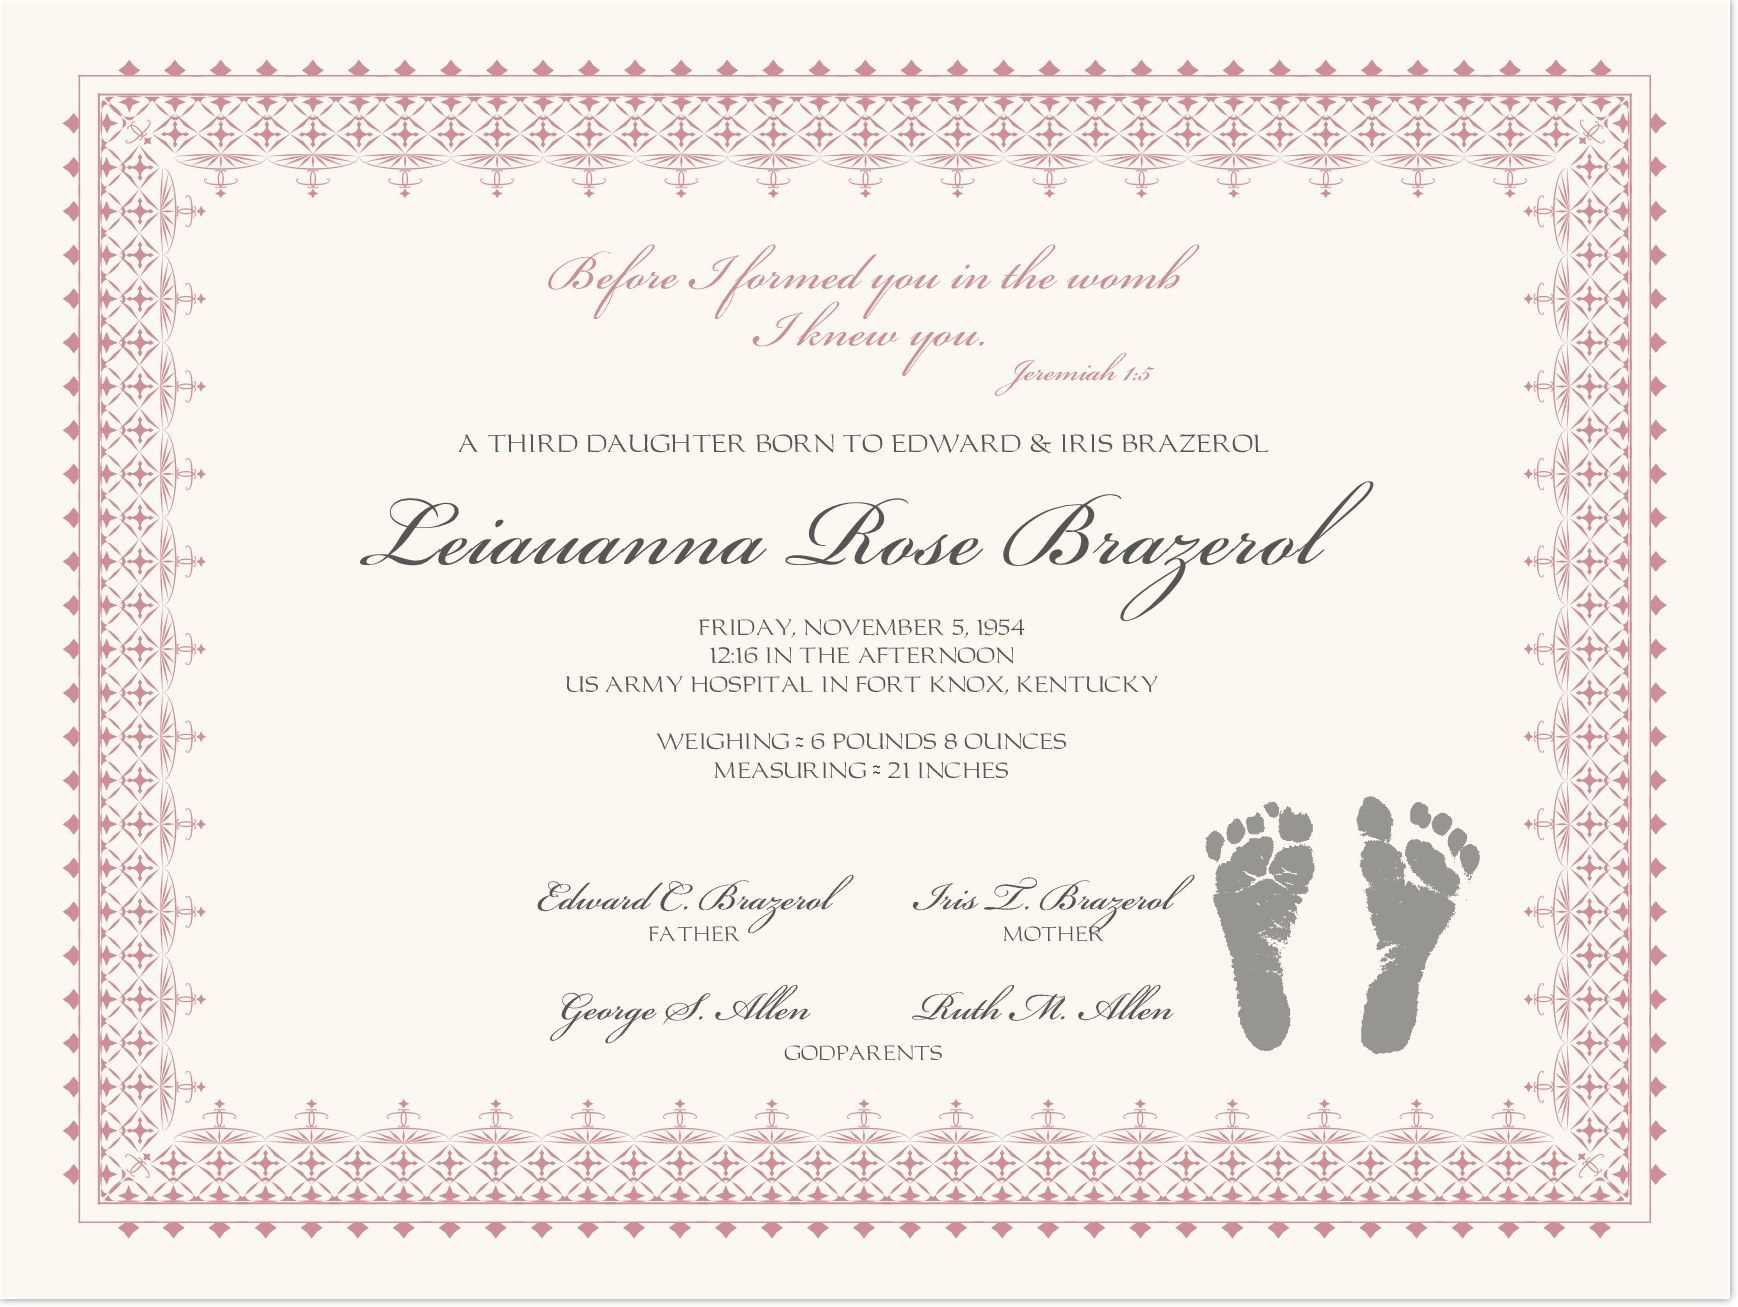 002 Baby Dedication Certificate Template Ideas Wonderful Pertaining To Christian Baptism Certificate Template